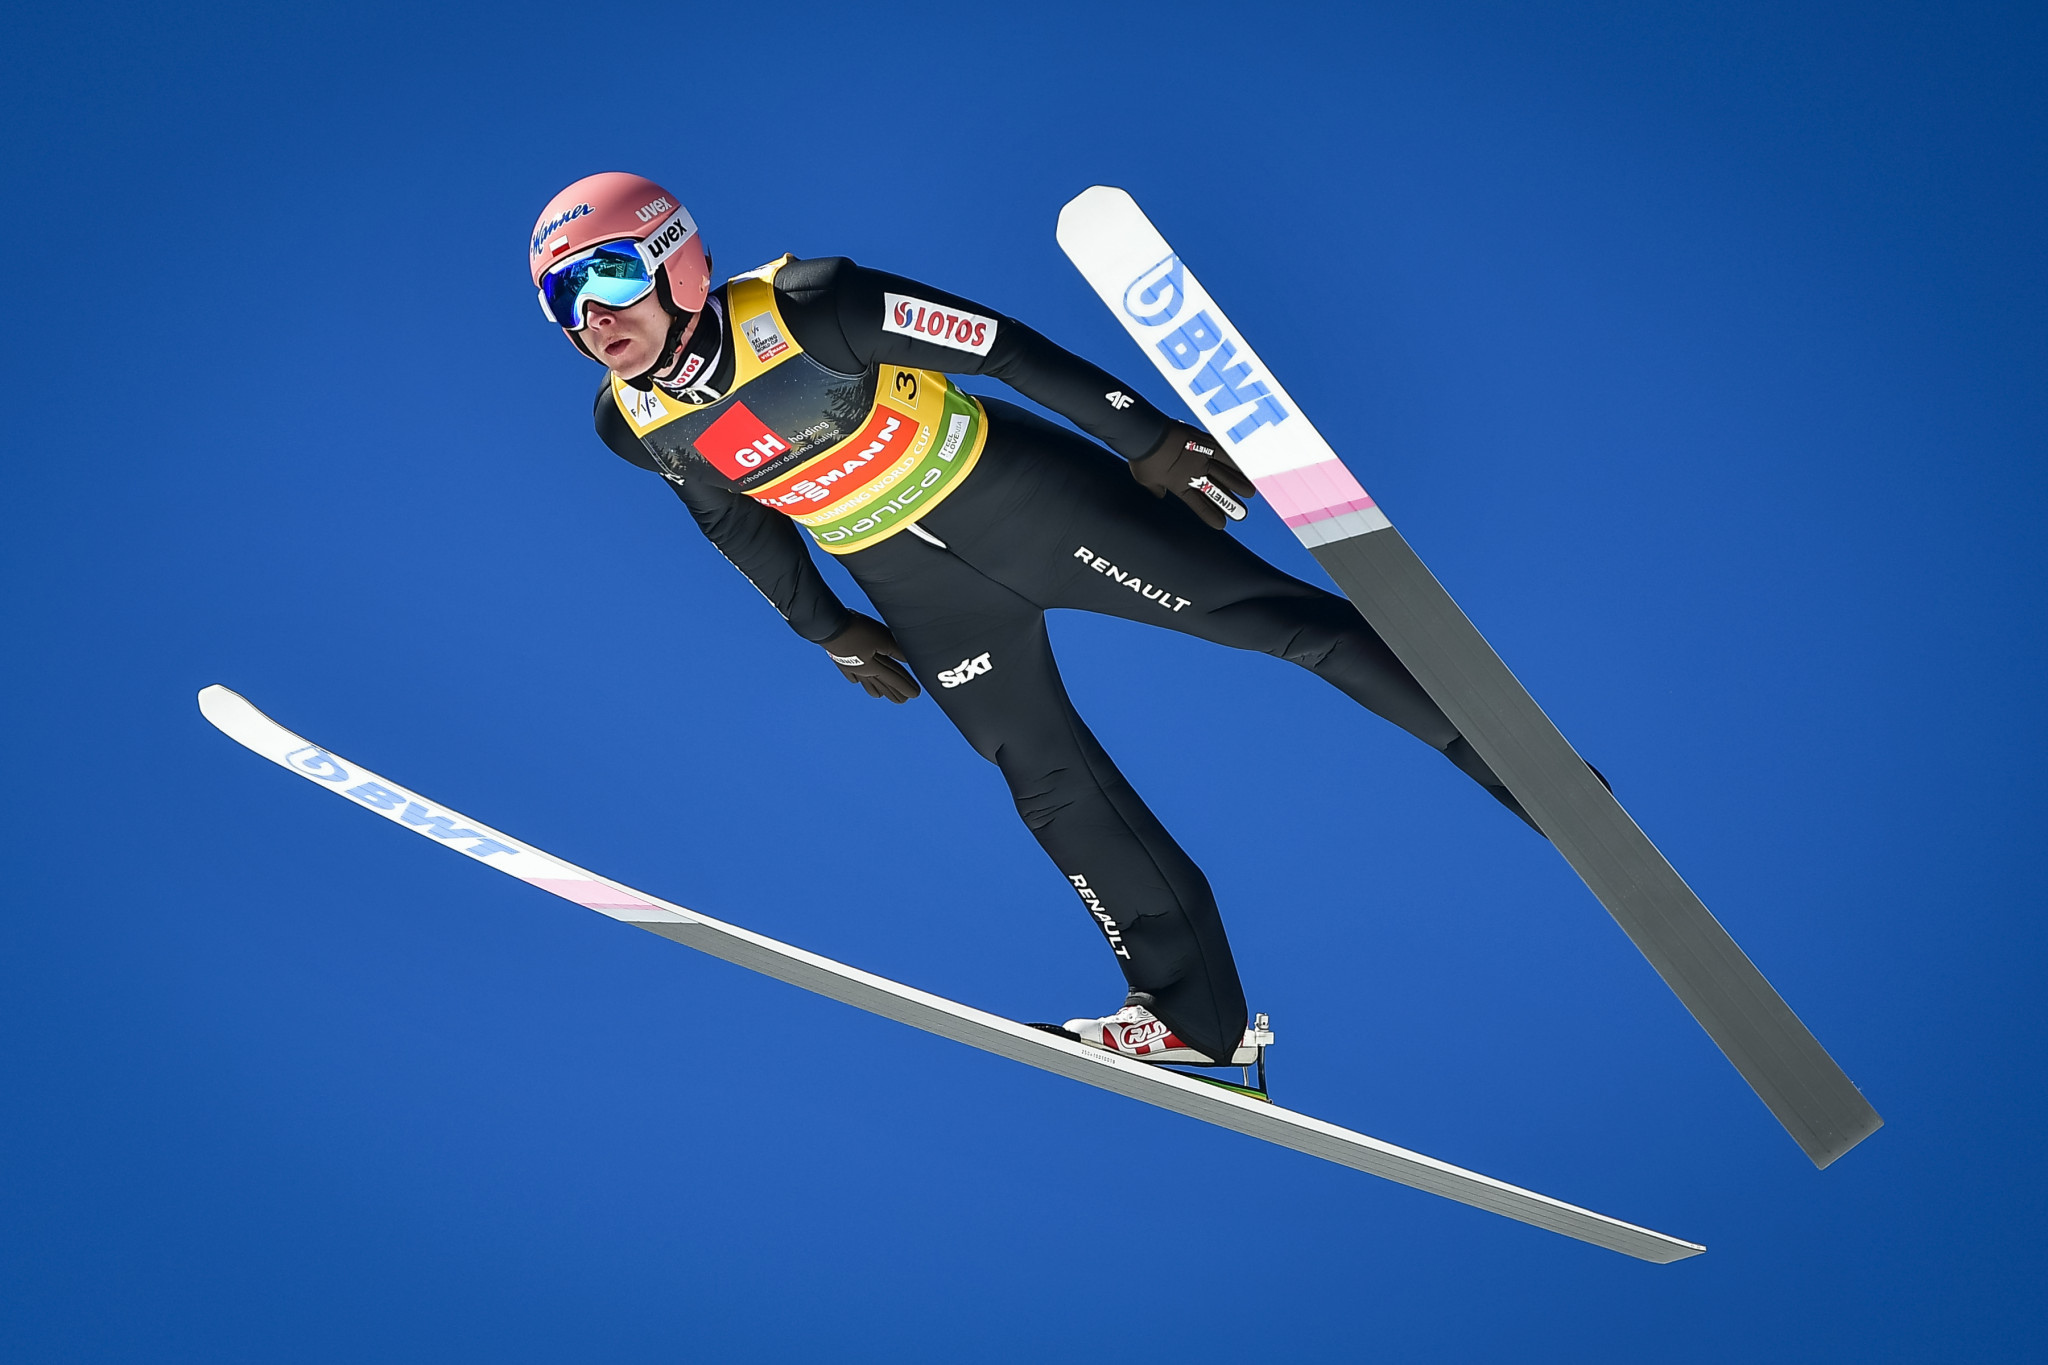 Poland win team competition at FIS Ski Jumping World Cup